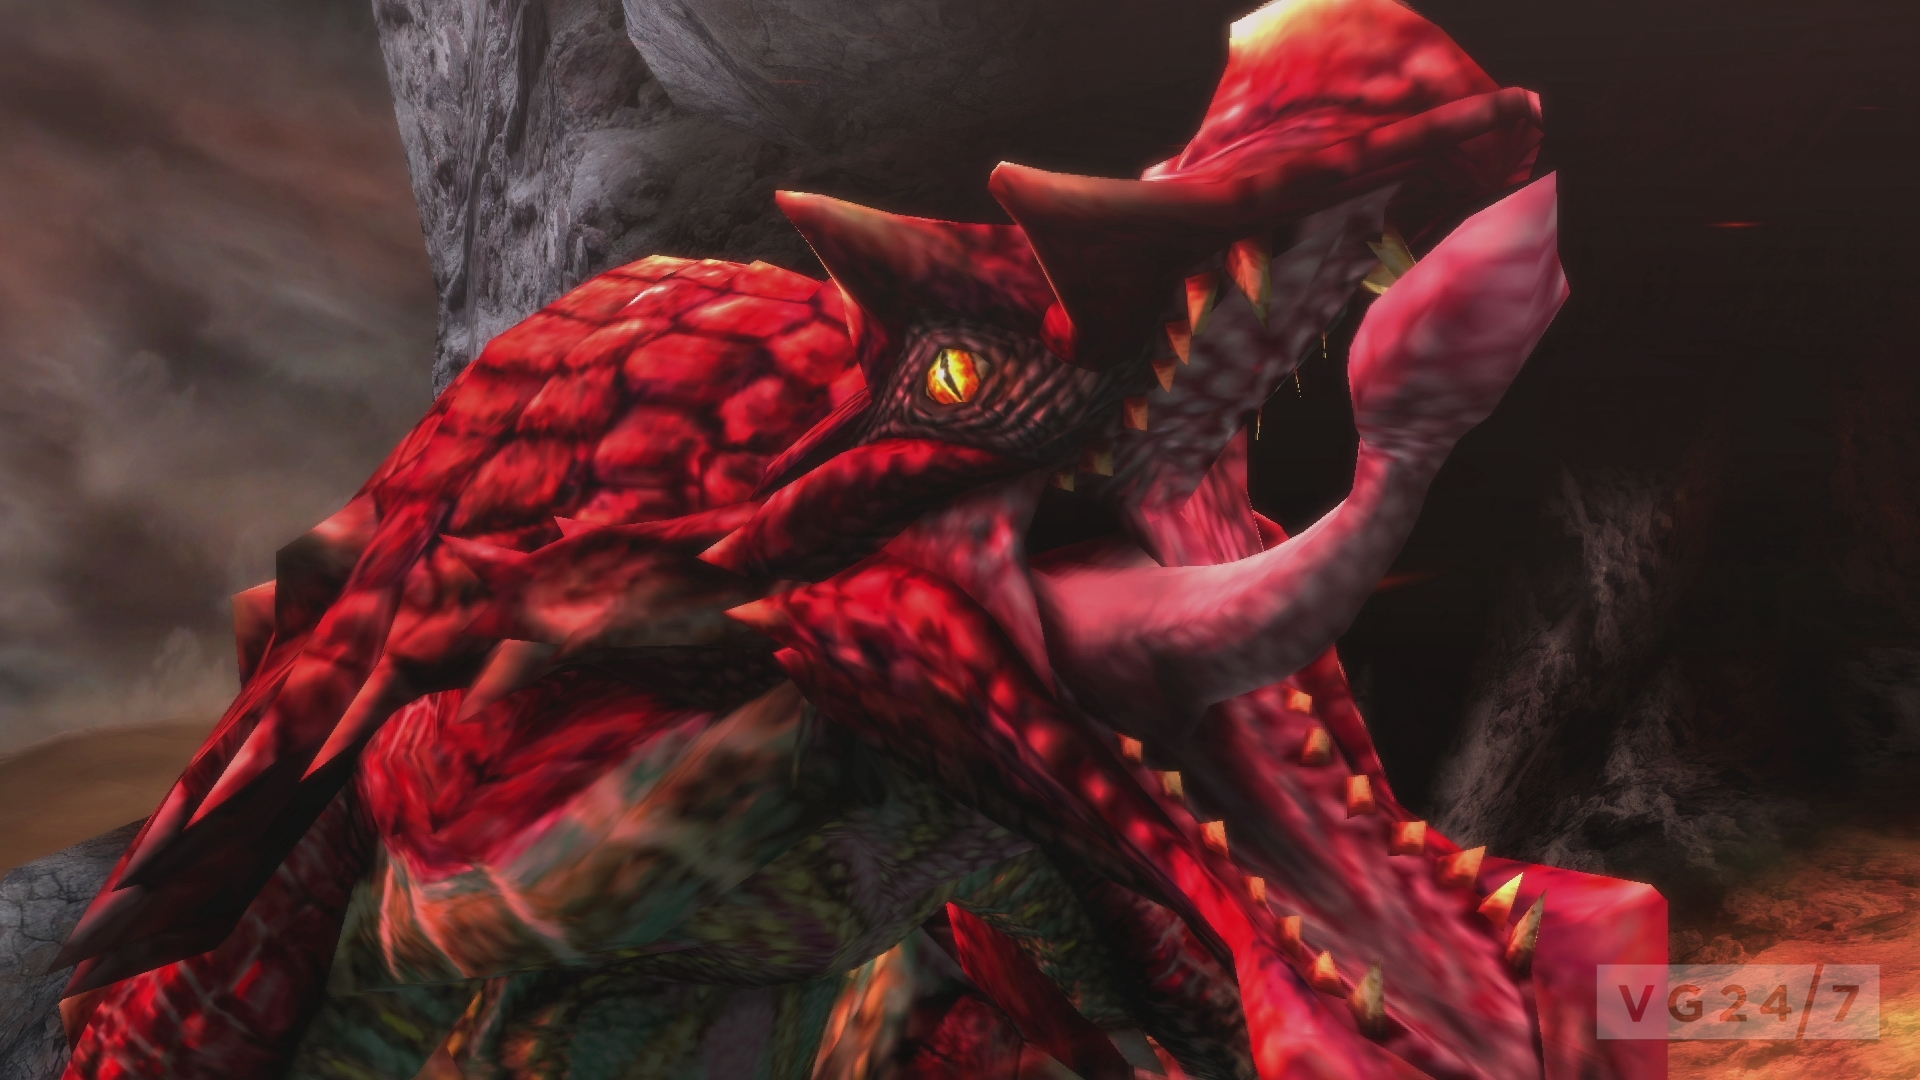 Monster Hunter 3 Ultimate's new enemies include Volvidon and Lagombi - VG247